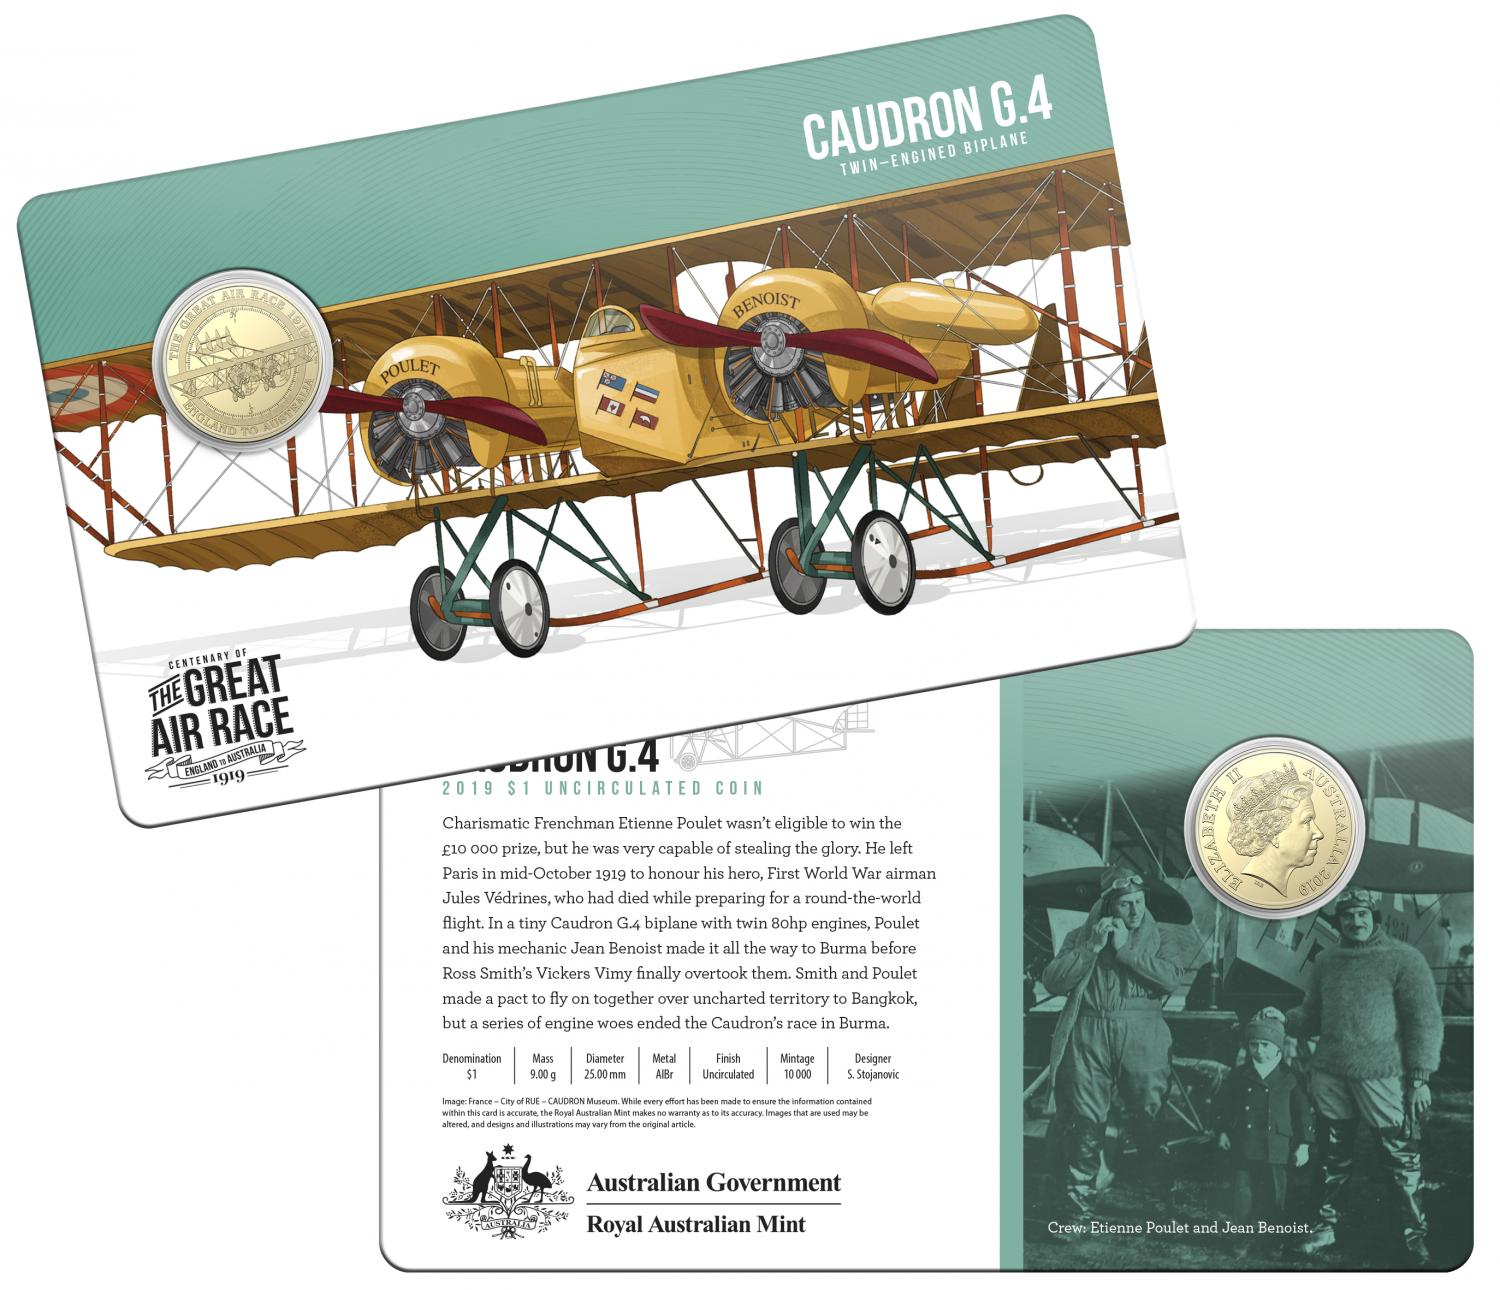 Thumbnail for 2019 Centenary off the Great Air Race Uncirculated $1.00 - Caudron G.4